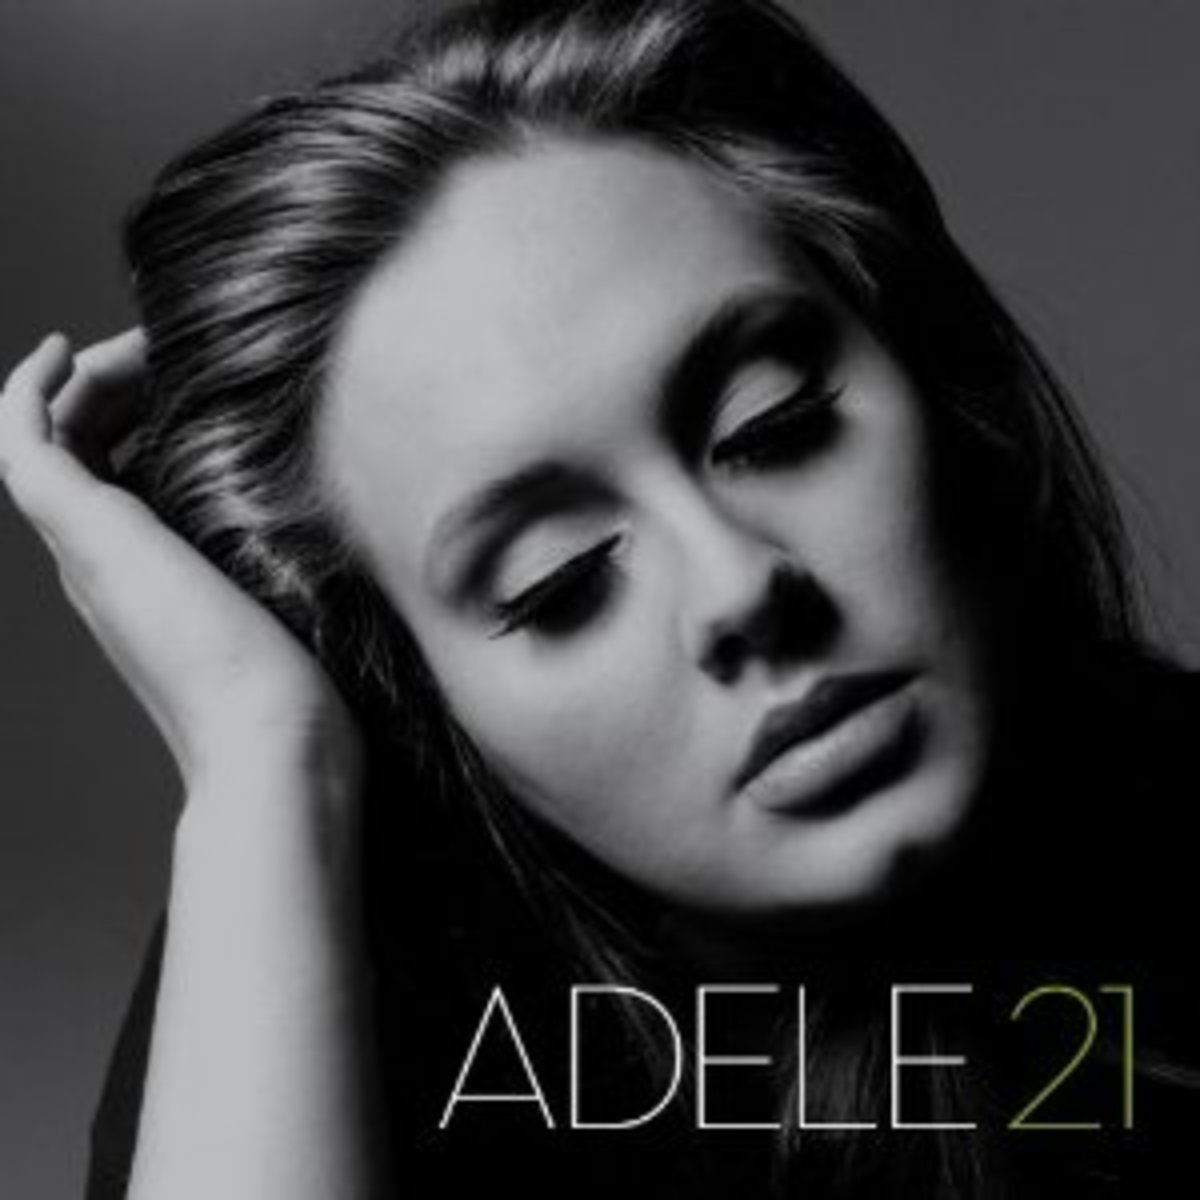 The London-based singer Adele has released an absolutely killer lead single from her forthcoming album 21, which is due to drop on February 22nd in the UK.